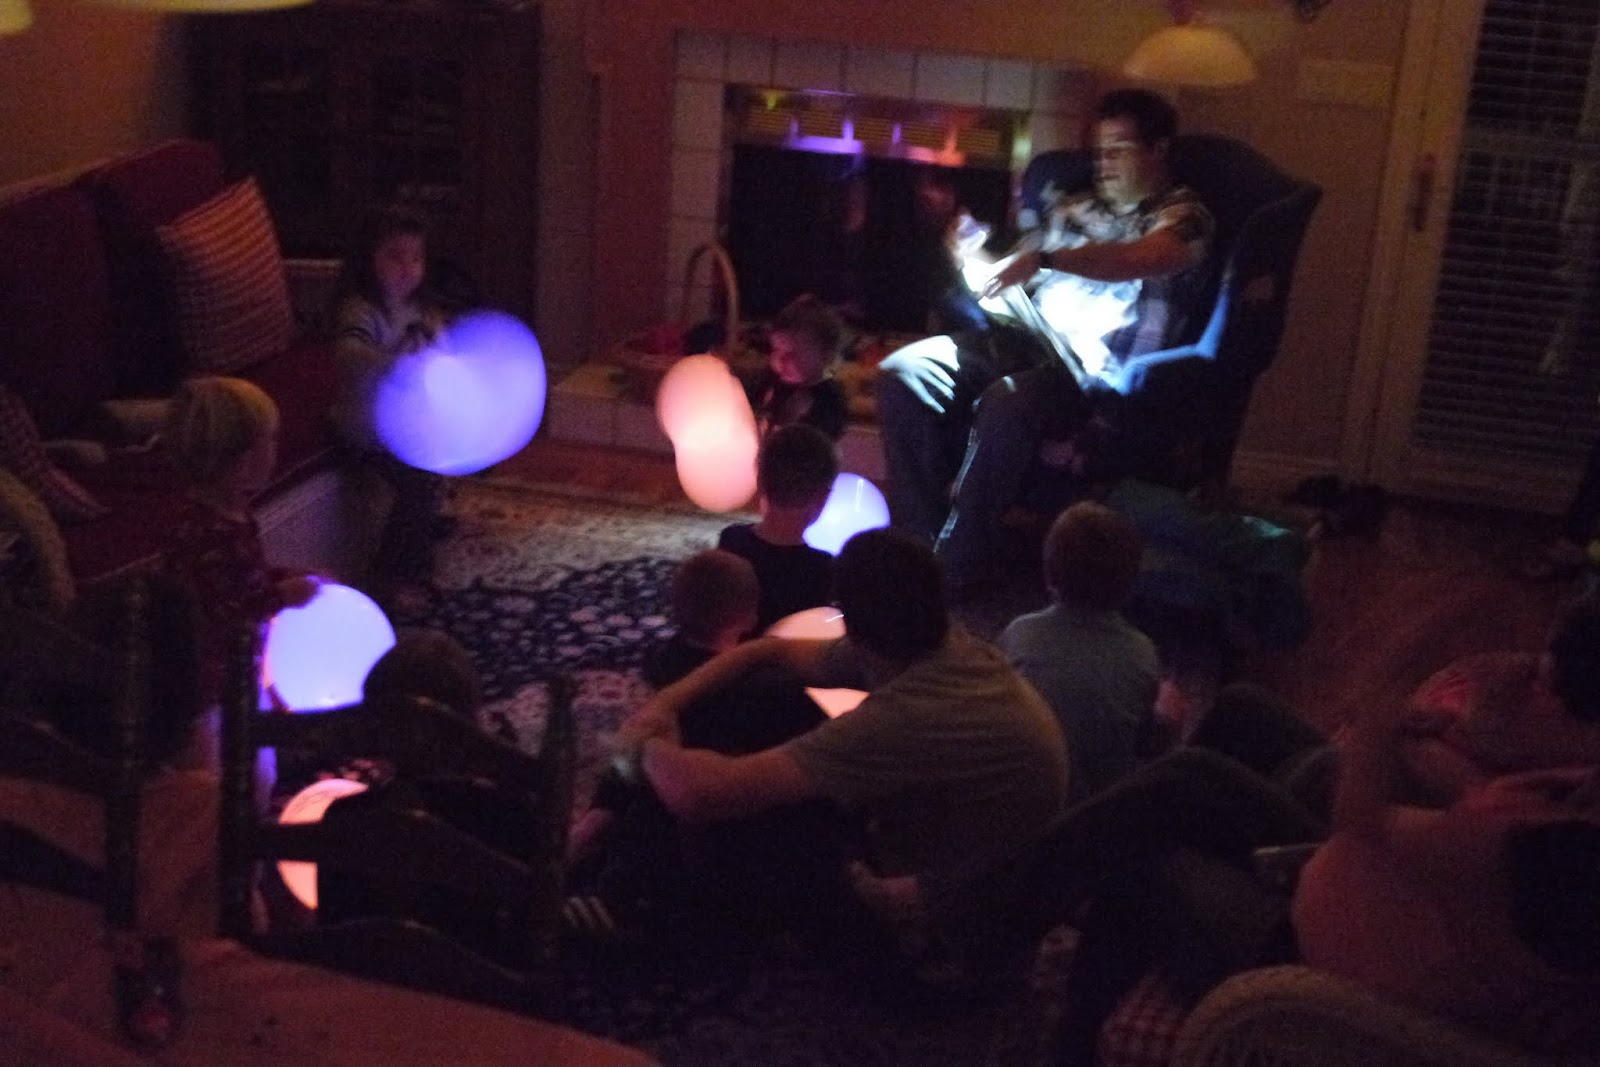 Balloons With Glow Sticks in Them Glow-stick Ghost Balloon Scary